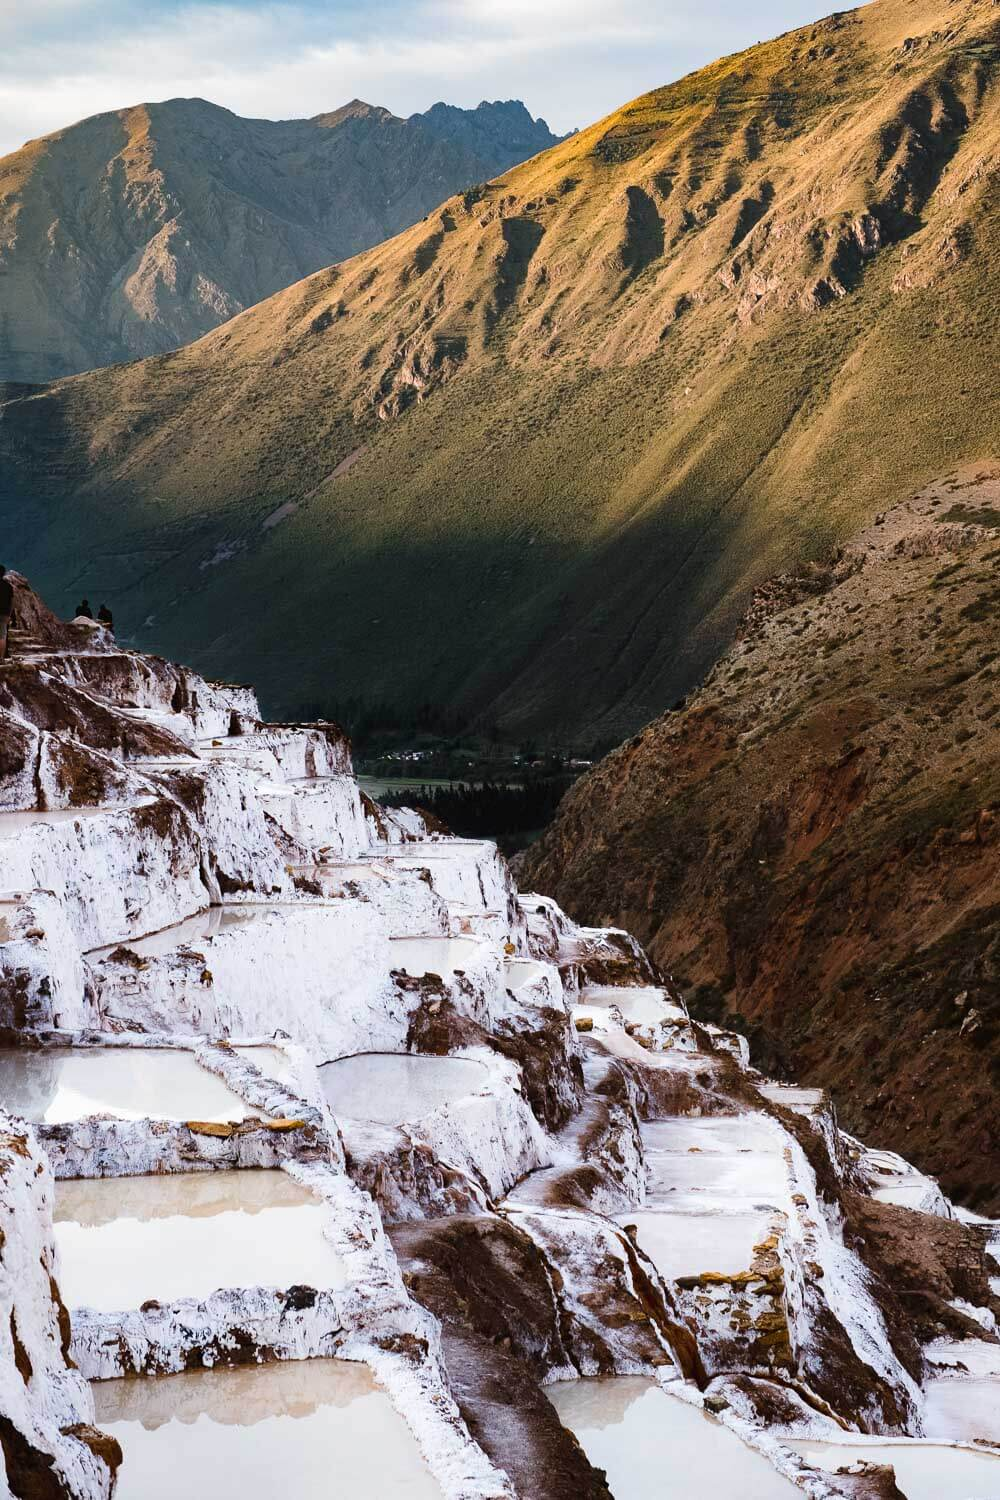 """The Maras Salt Ponds in The Sacred Valley, Peru. Travel photography and guide by © Natasha Lequepeys for """"And Then I Met Yoko"""". #travelblog #fujifilm #sacredvalleyitinerary"""